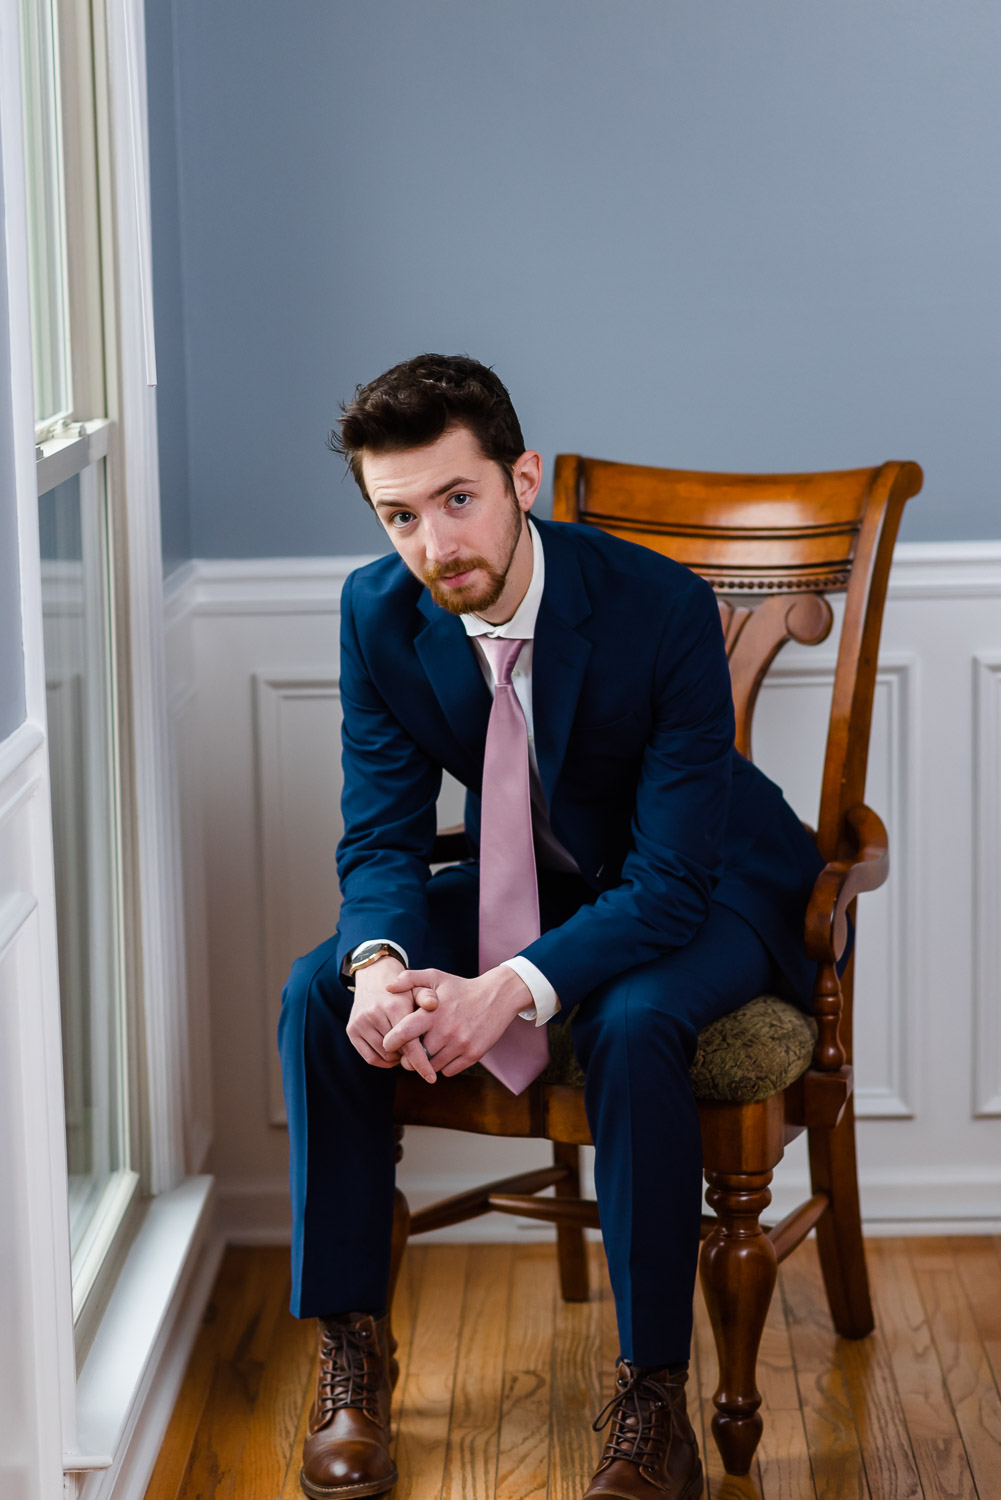 groom in a navy blue suit and dusty rose colored tie.